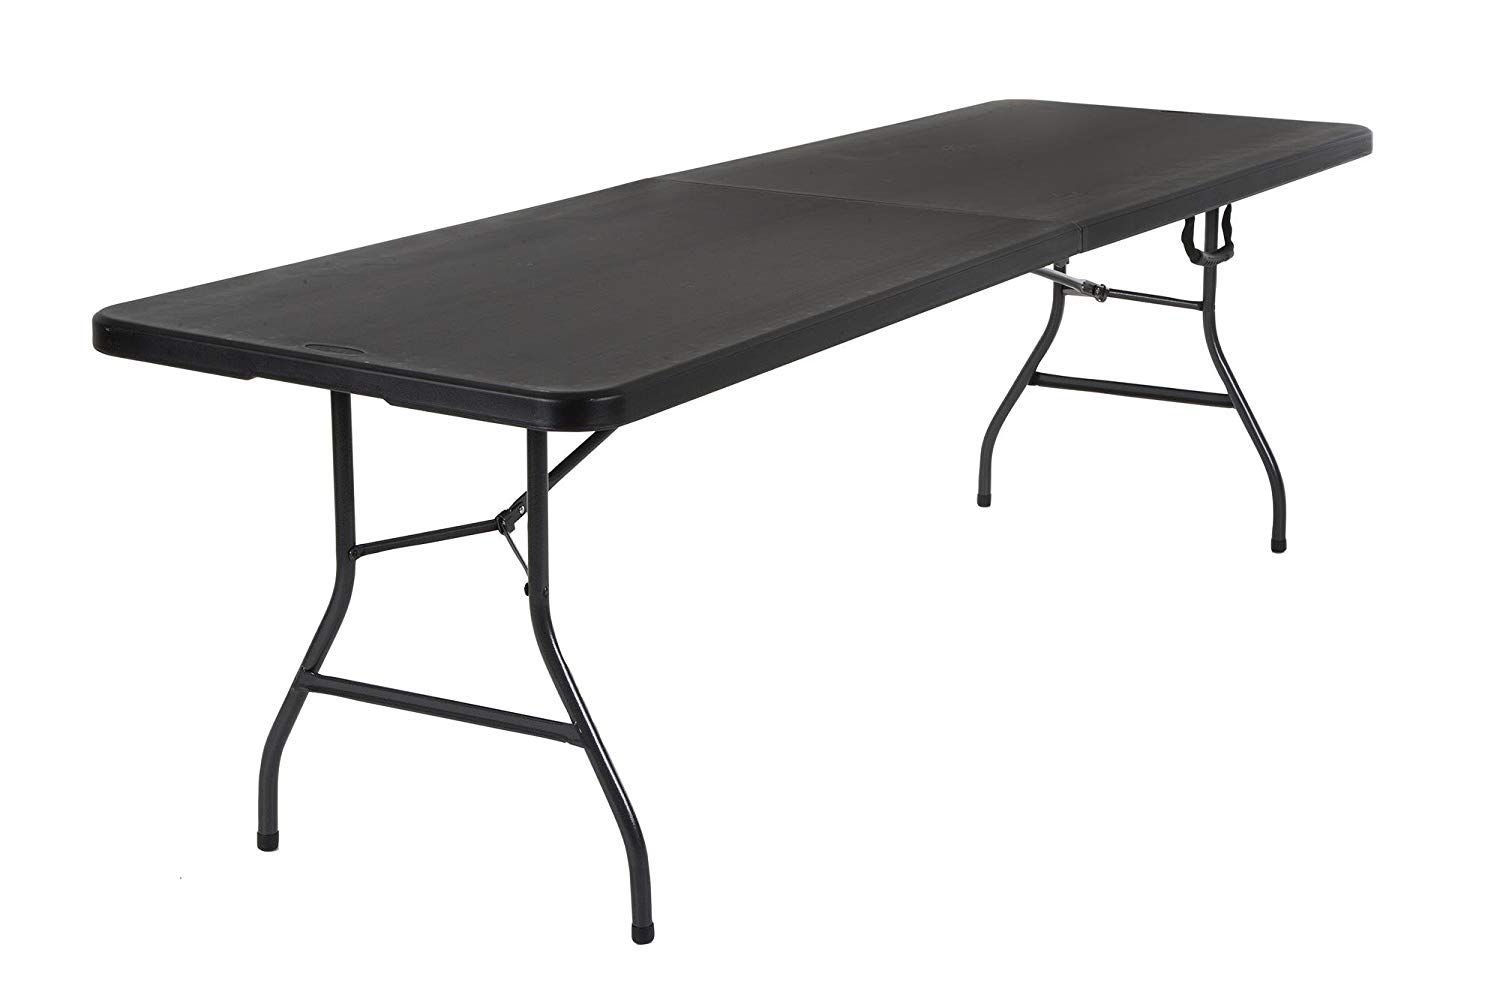 Folding Table All Season Table For Indoor And Outdoor Use 8ft X